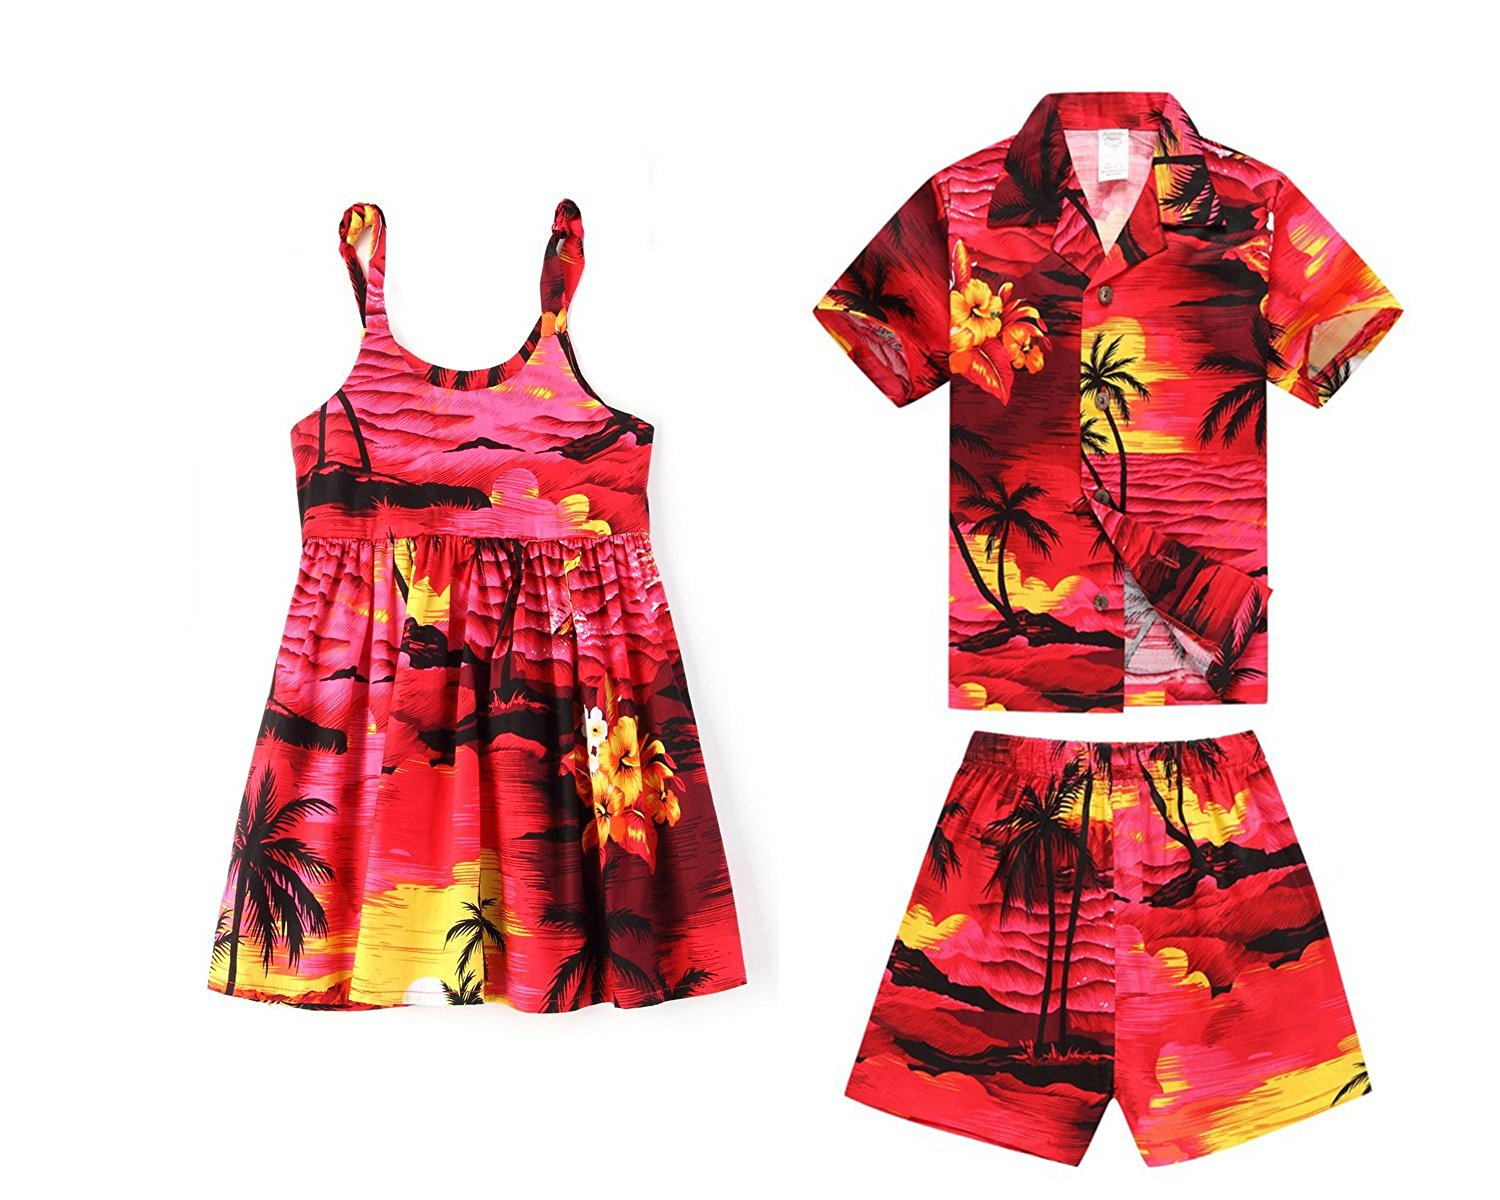 1c6bd85d31 Get Quotations · Hawaii Hangover Matching Boy and Girl Siblings Hawaiian  Luau Outfits In Sunset Red and Blue